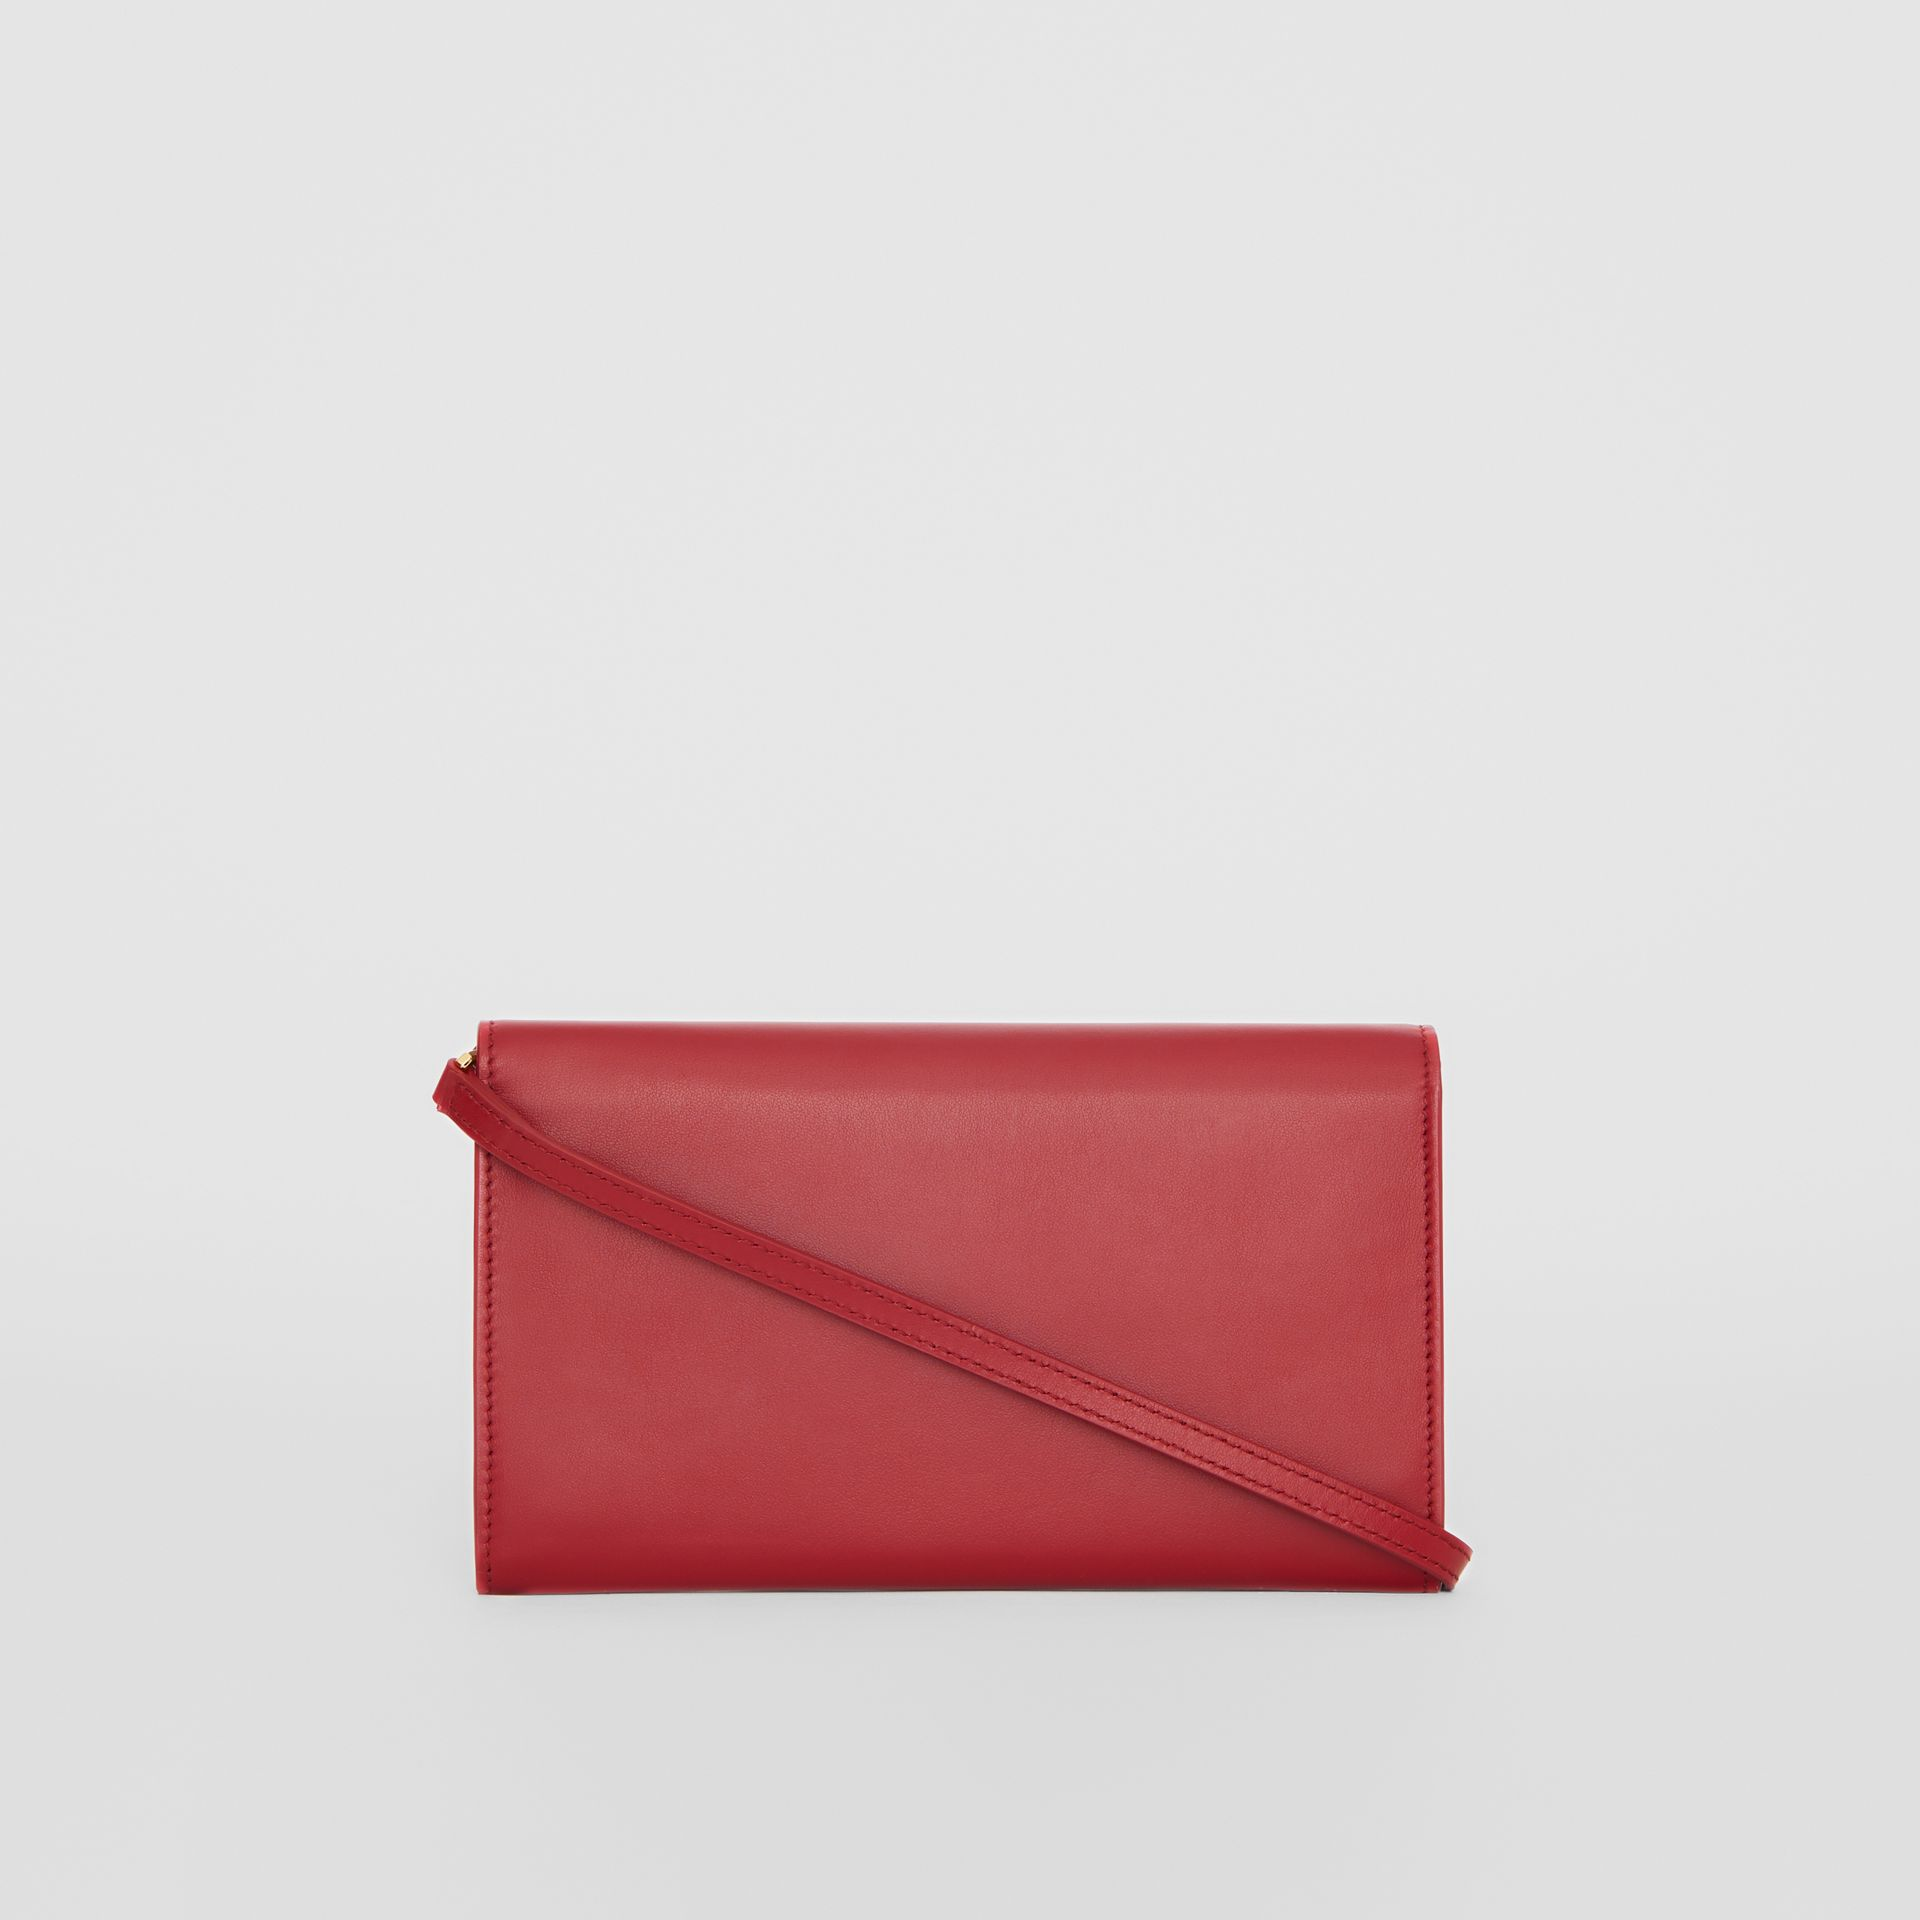 Monogram Motif Leather Wallet with Detachable Strap in Crimson - Women | Burberry United Kingdom - gallery image 7